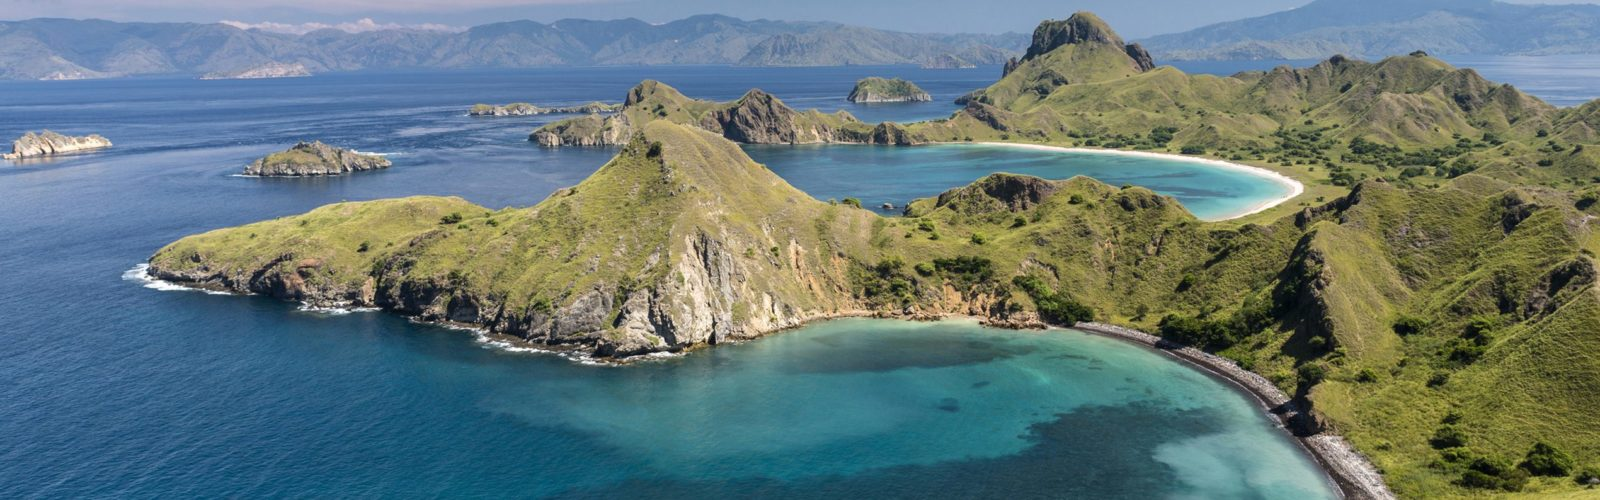 komodo-national-park